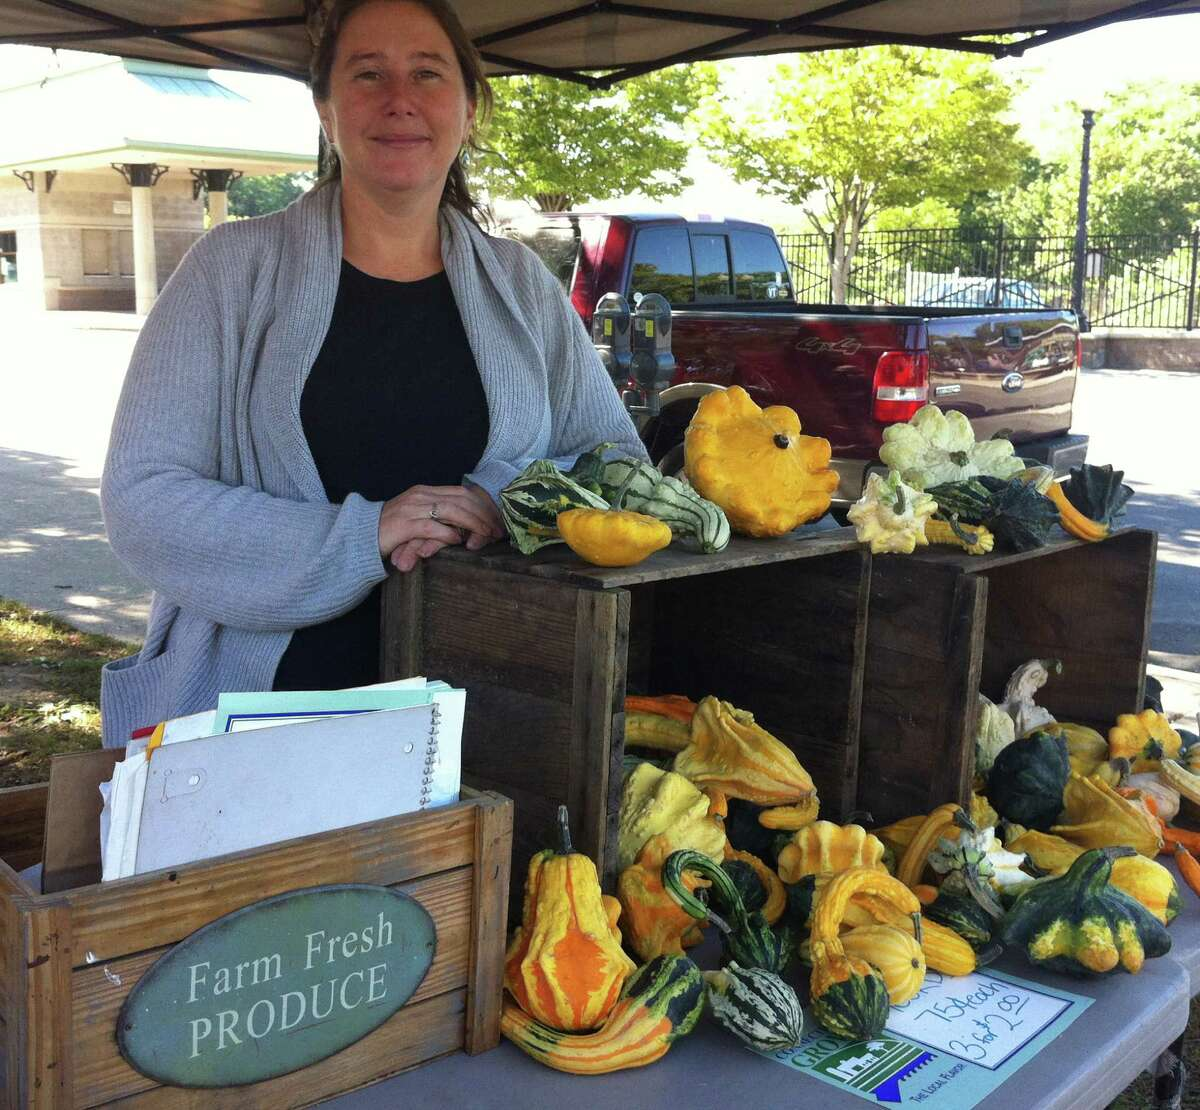 Willow Schulz, 36, of New Milford had plenty of eggplant and other fresh produce to sell Friday at the farmers market in Danbury. Although she considers herself a supporter of Chris Murphy, the Democratic candidate for U.S. Senate, she is disappointed in the campaign rhetoric between Murphy and Linda McMahon, his Republican challenger.